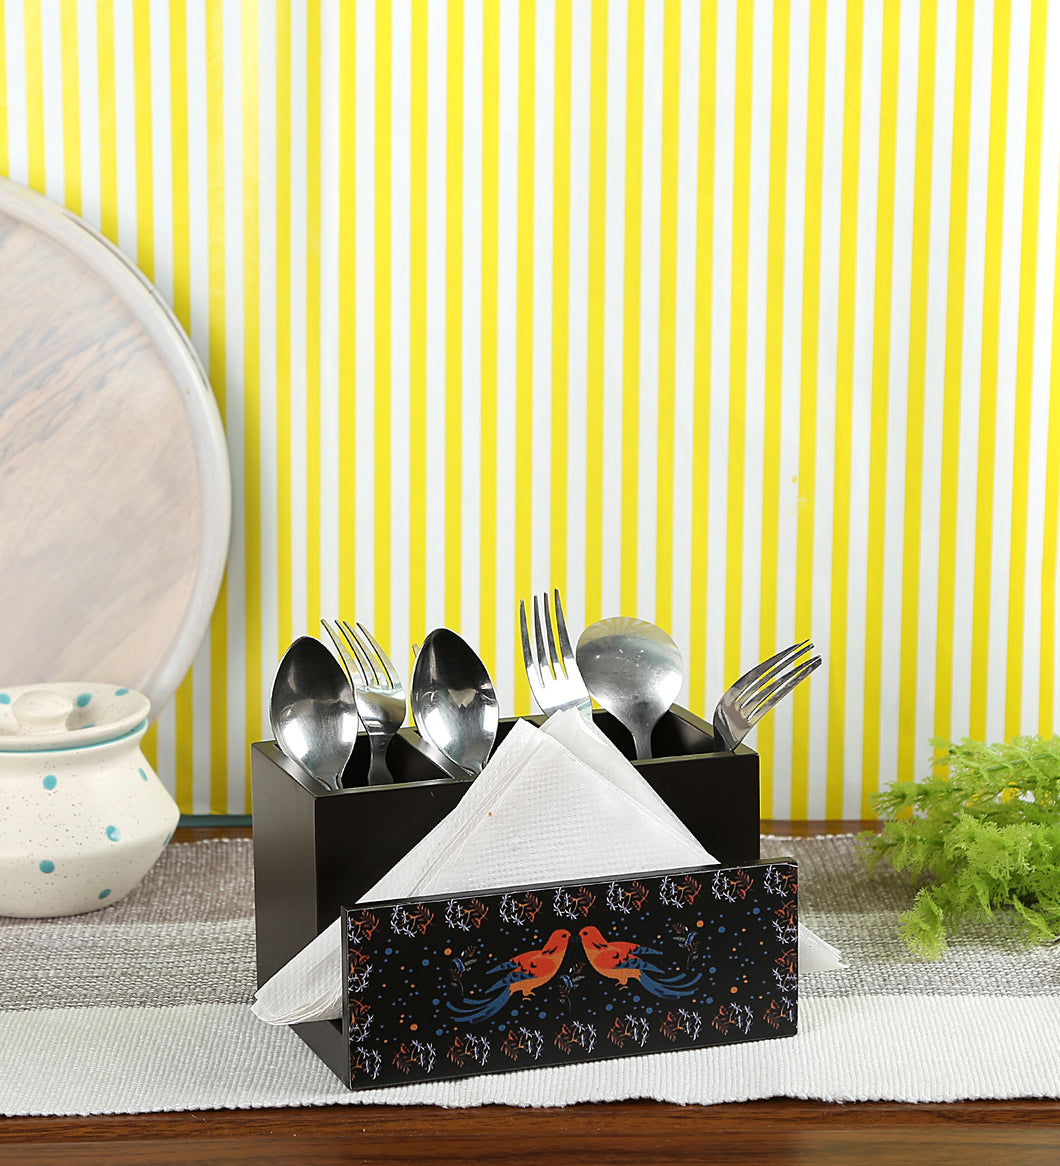 Crayton Birds MDF Tissue + Cutlery Holder